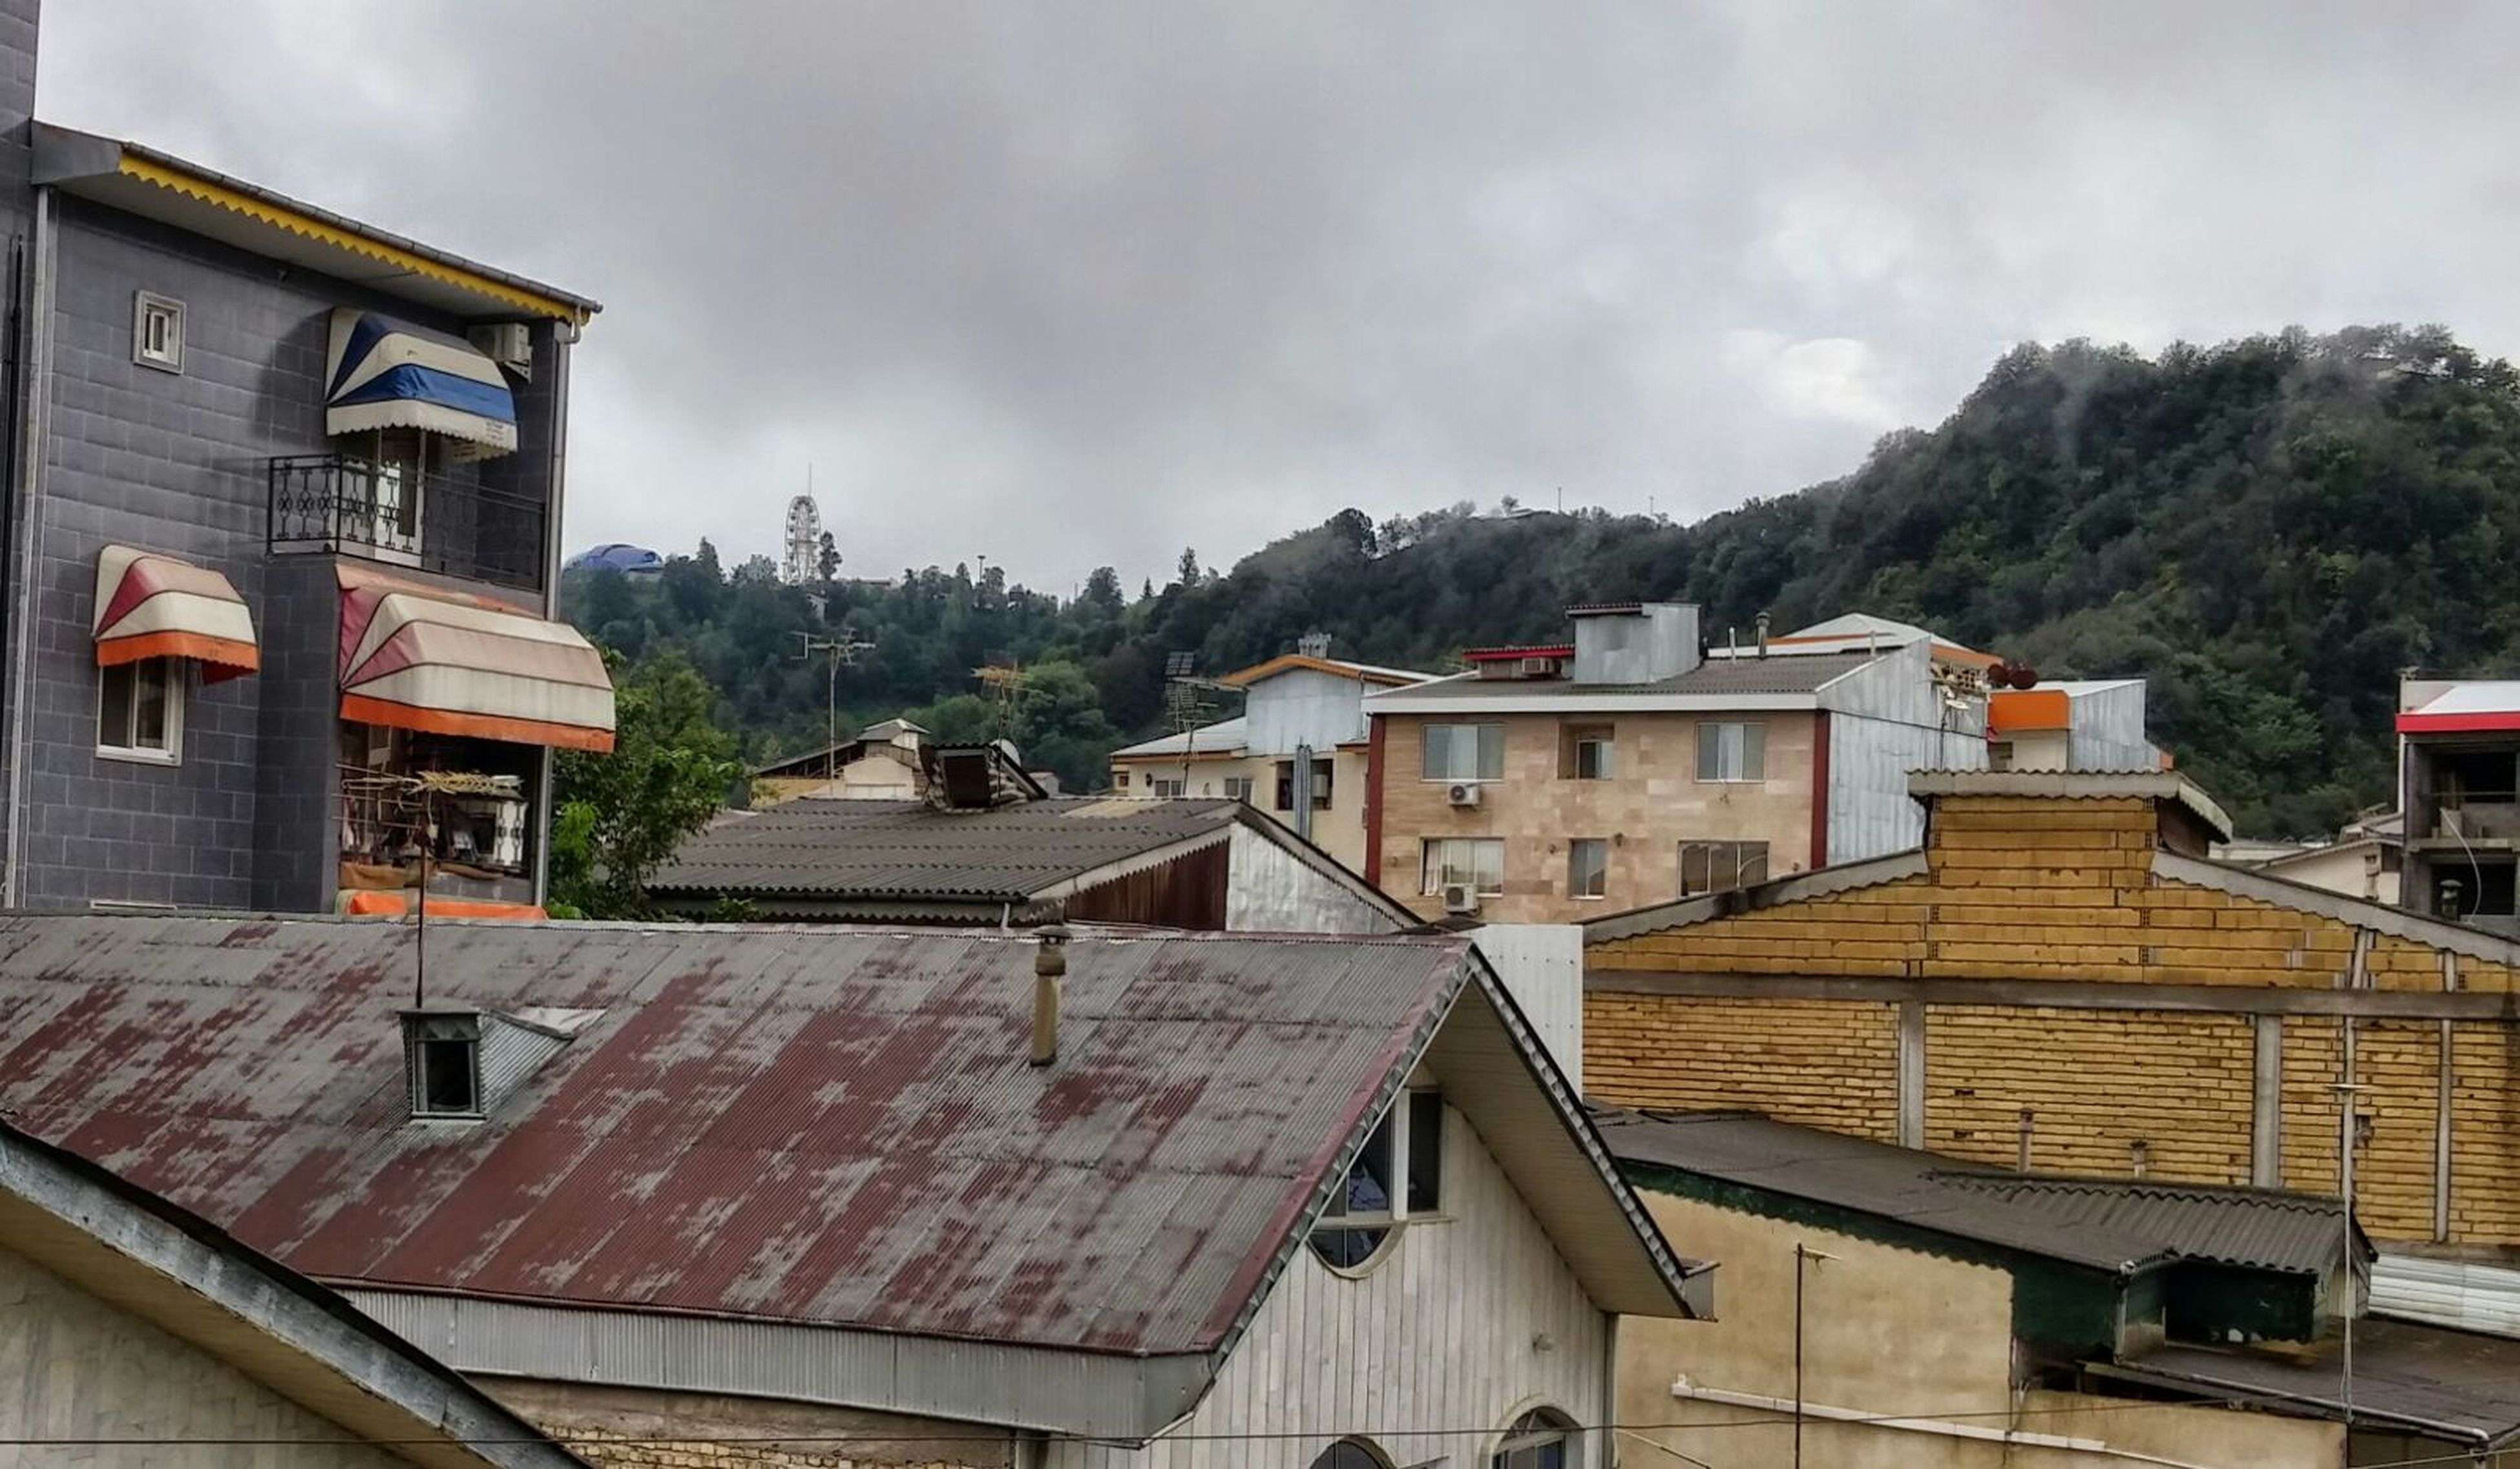 architecture, building exterior, built structure, house, sky, mountain, residential structure, roof, residential building, cloud - sky, town, tree, cloudy, cloud, day, outdoors, railing, residential district, no people, building